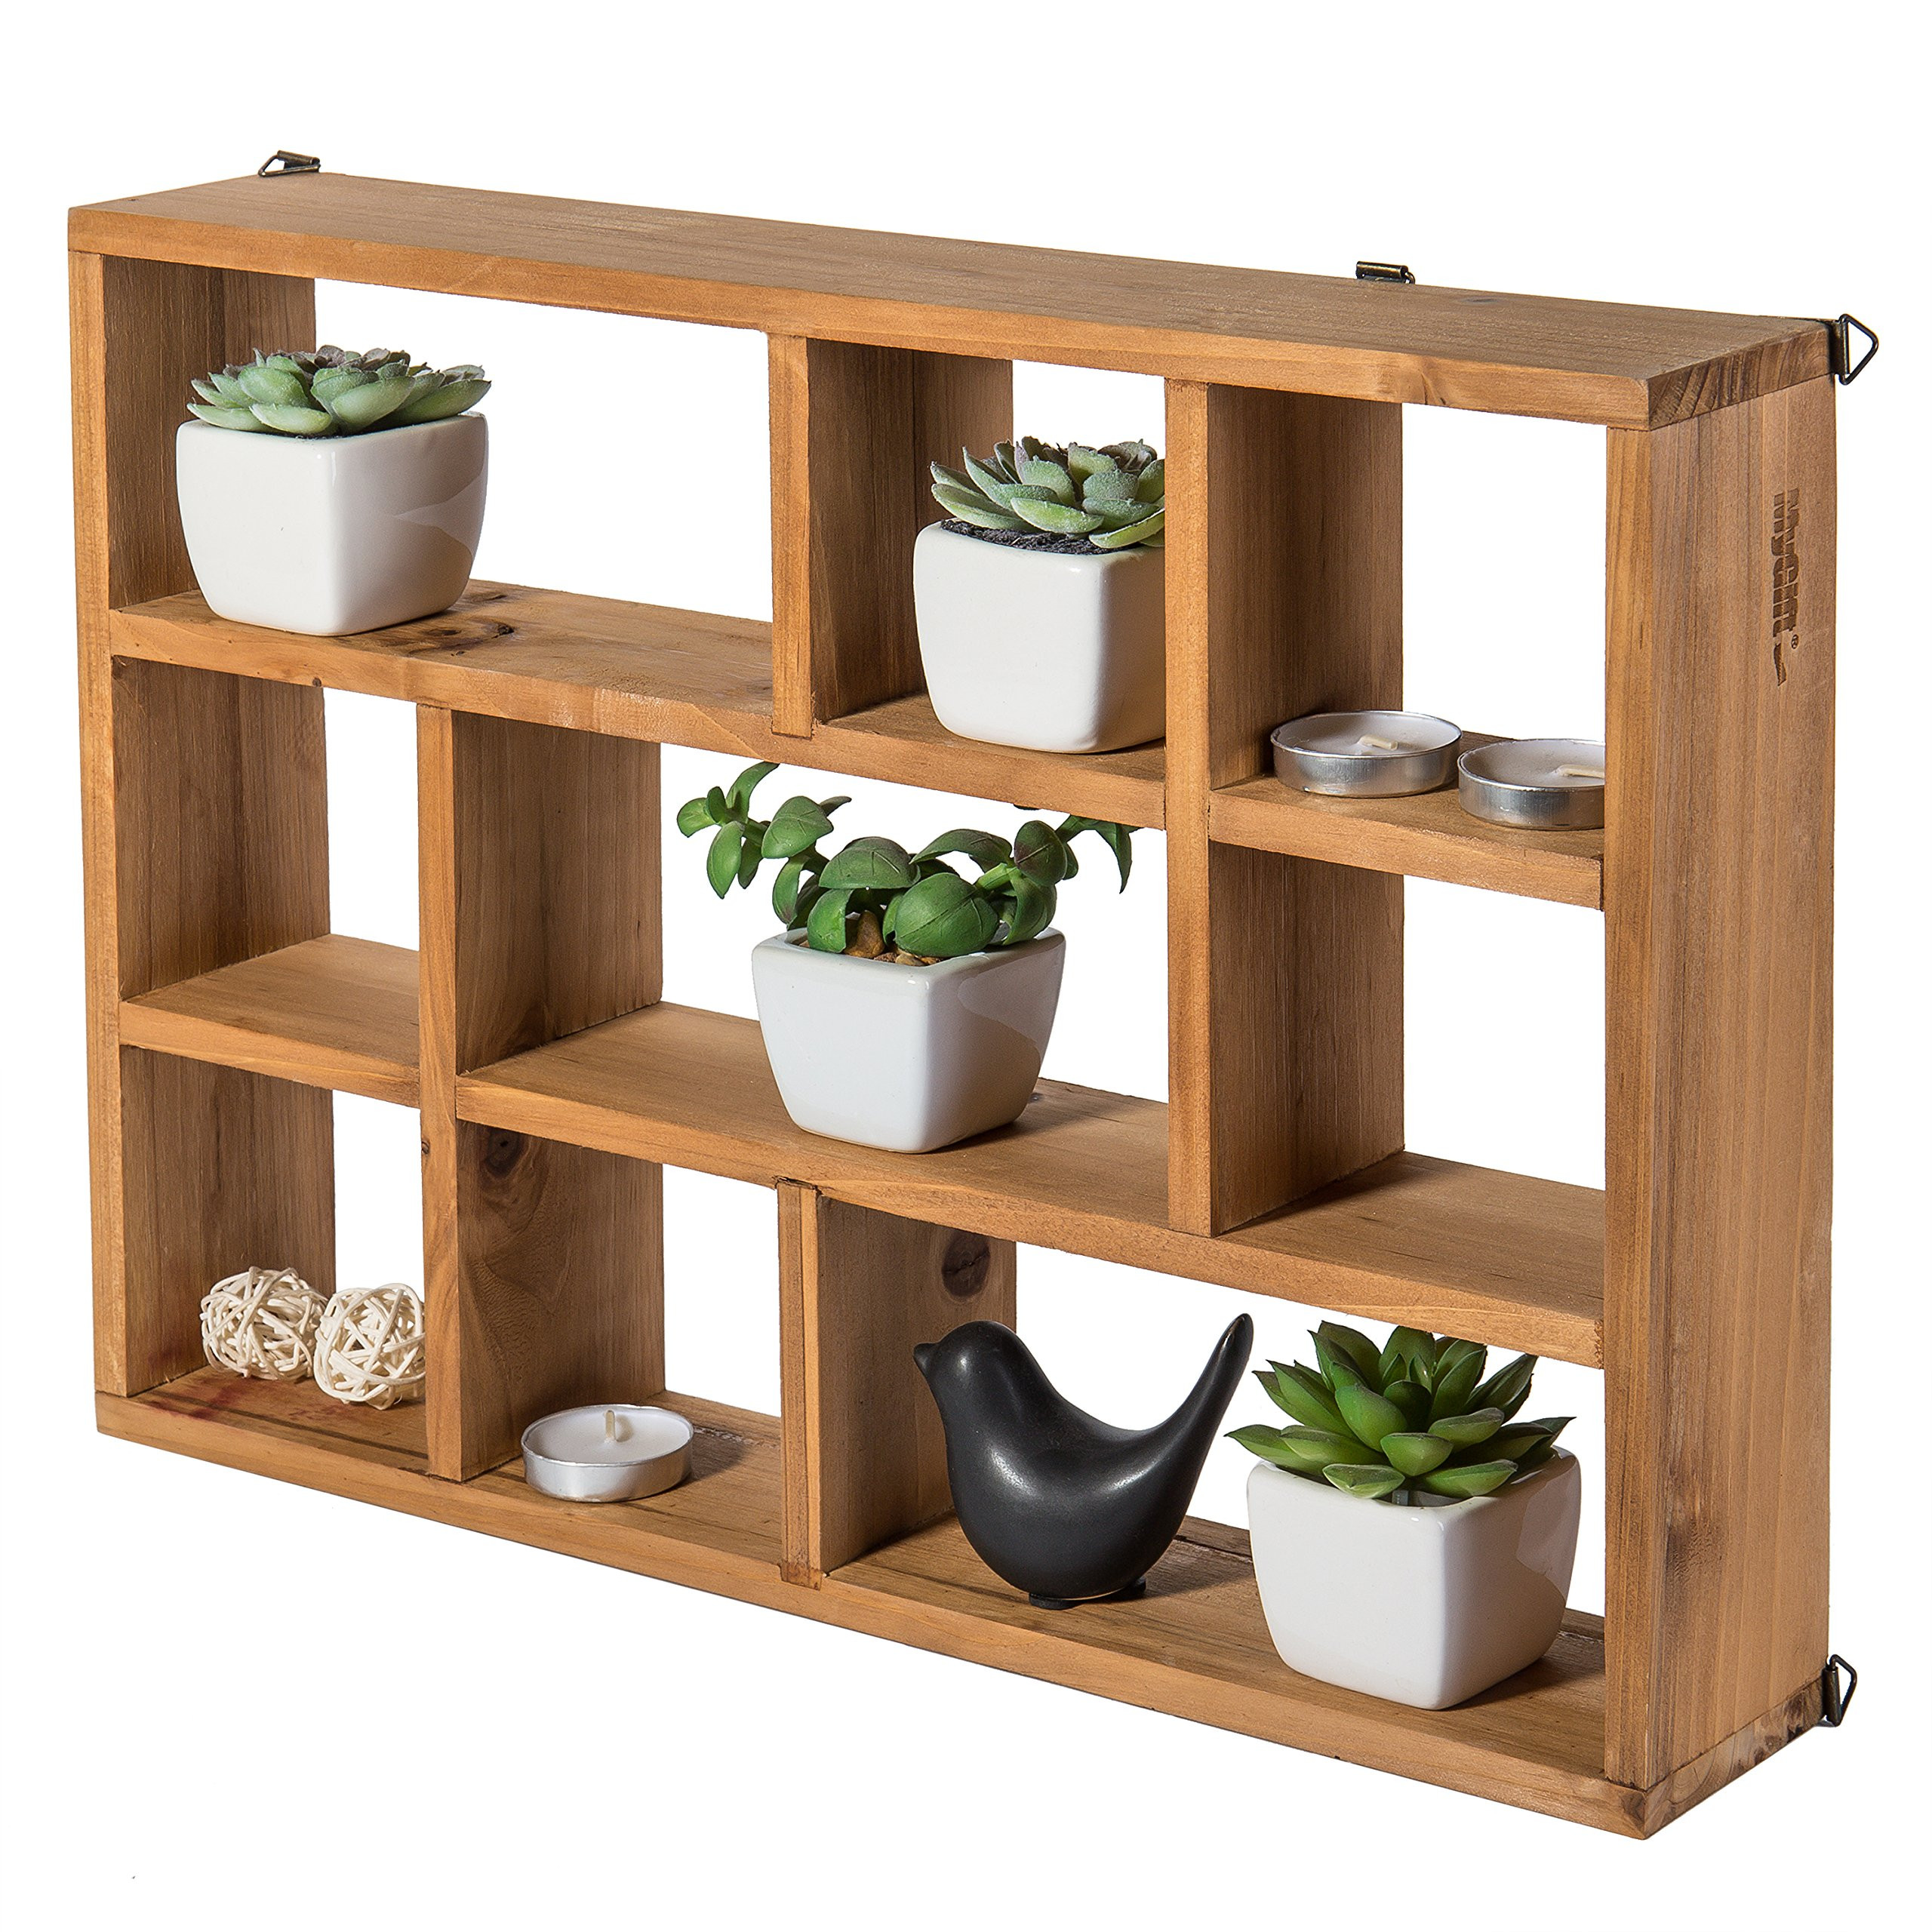 Best ideas about Vertical Wall Shelf . Save or Pin Galleon 15 Inch Wall Mount Vertical Horizonal 9 Now.